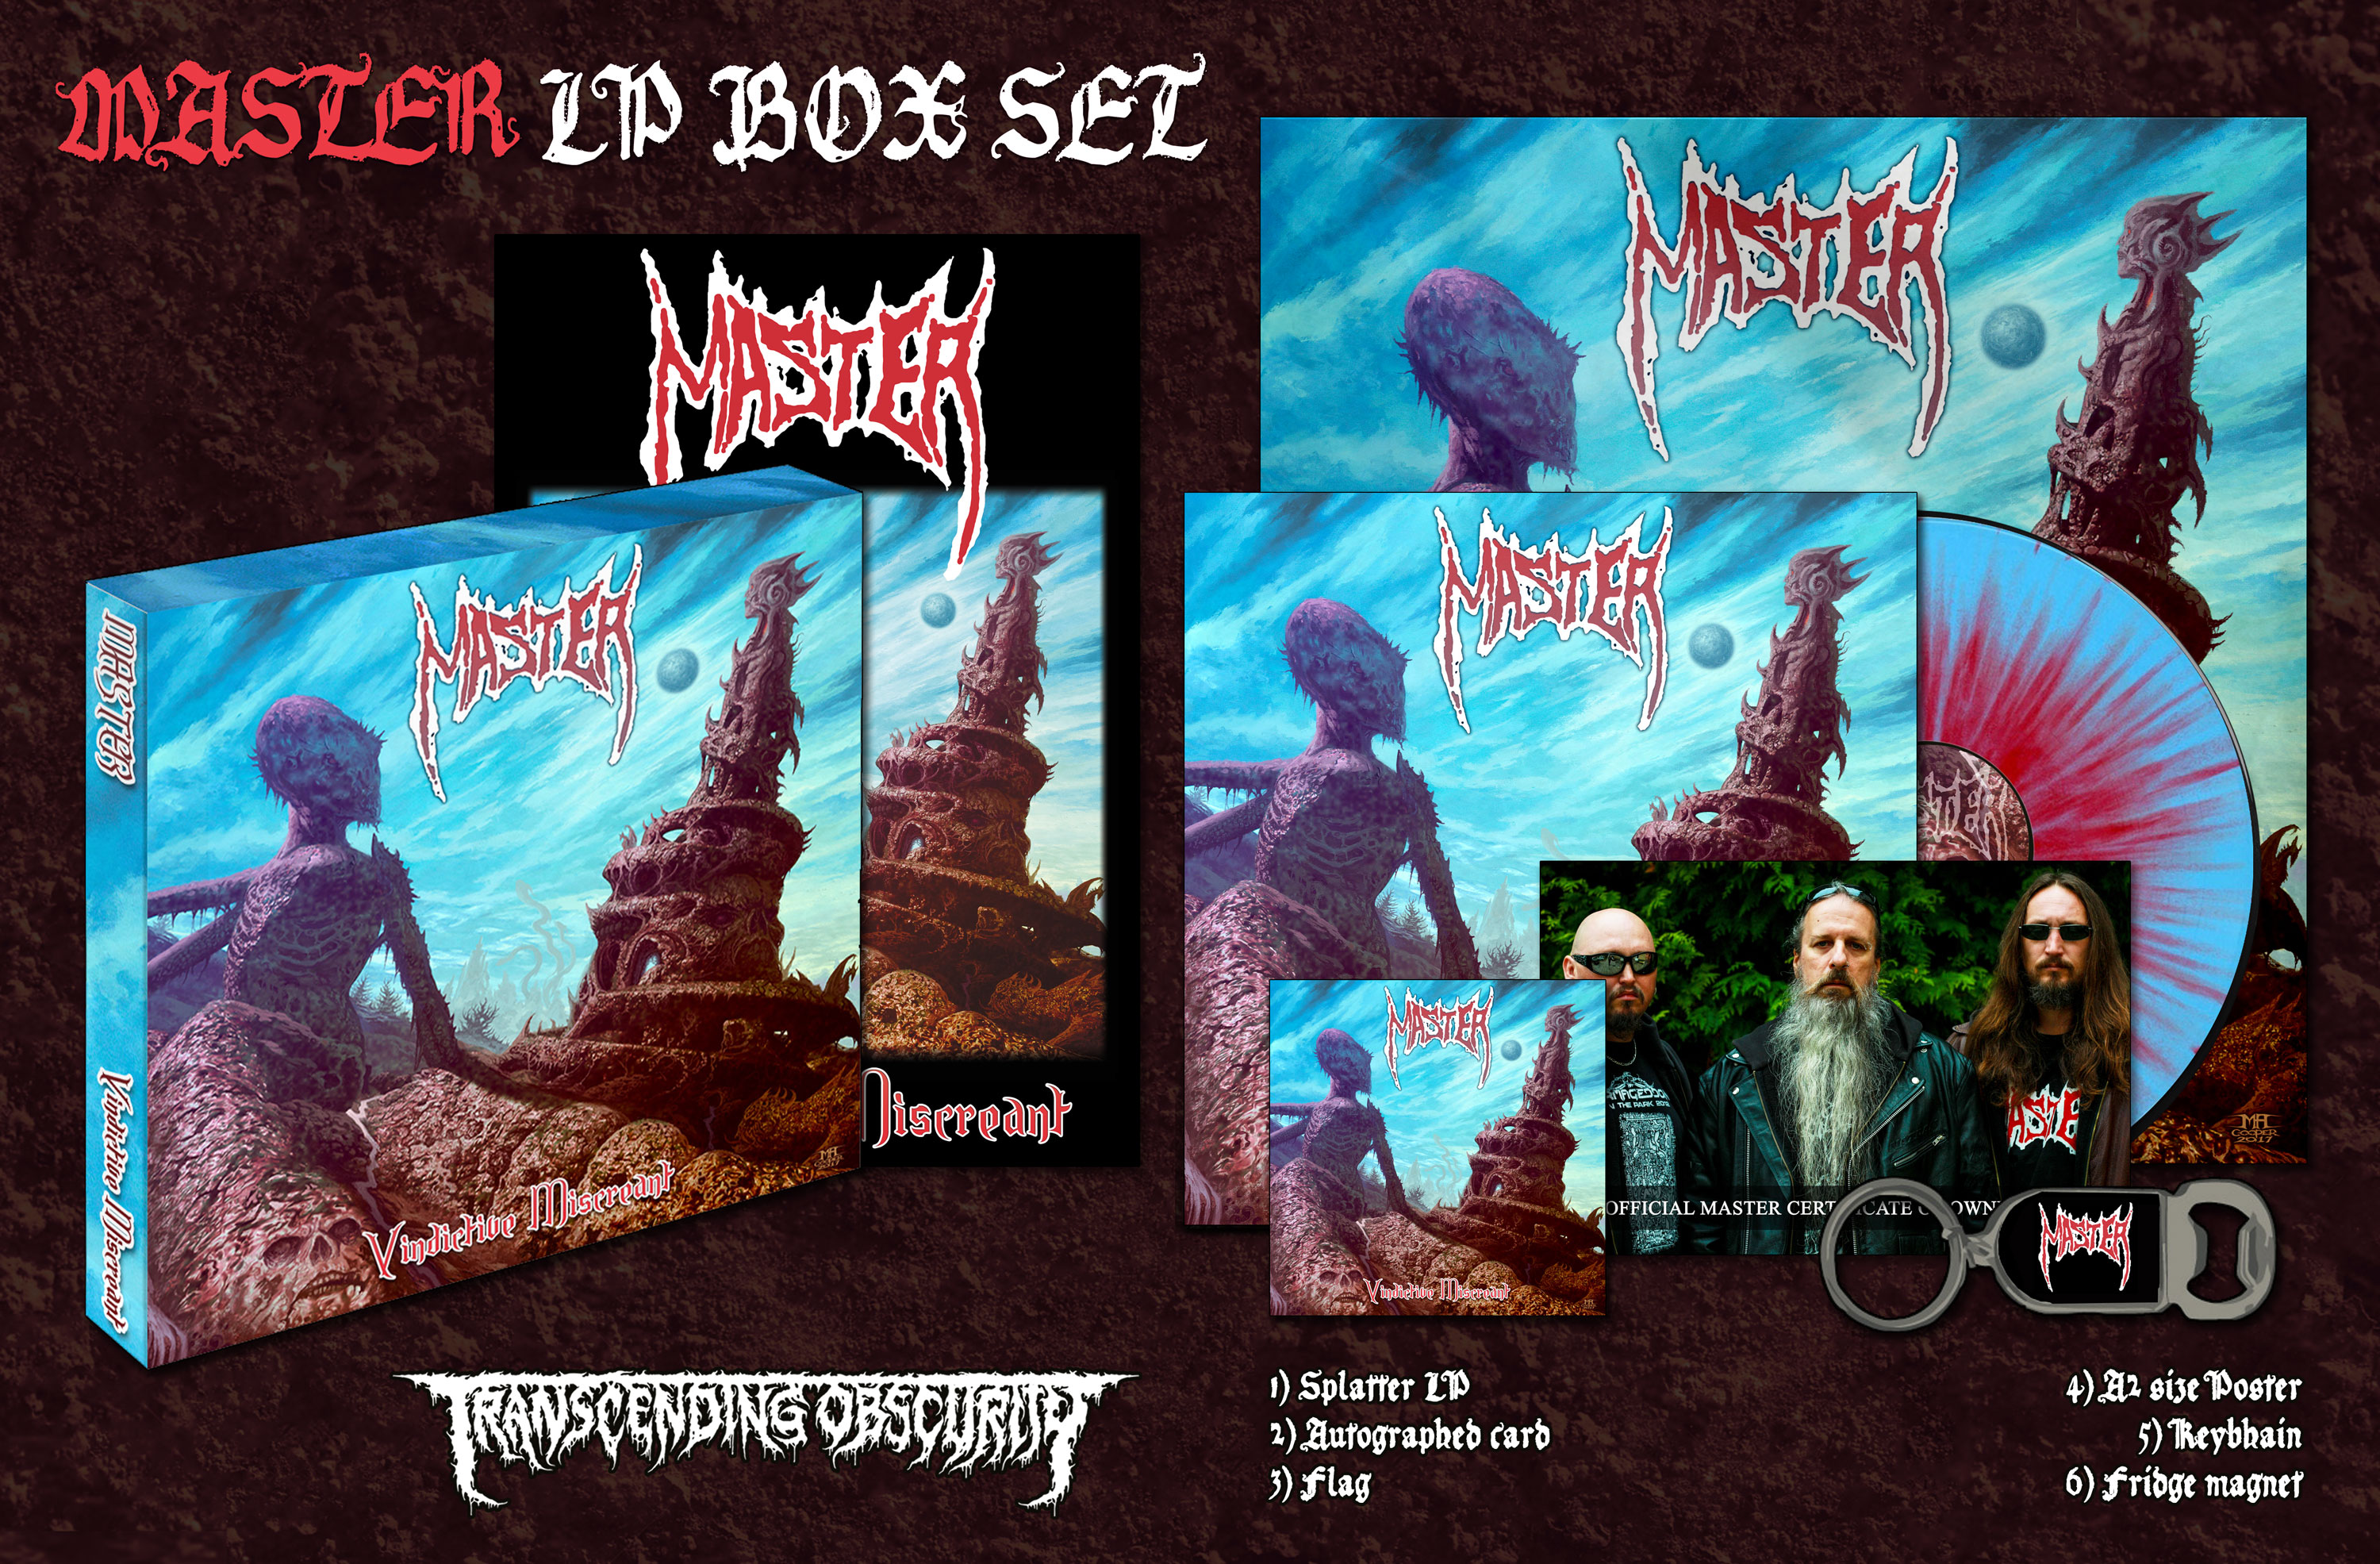 MASTER (Czech Republic) - Vindictive Miscreant LP Box Set (Limited to 100)